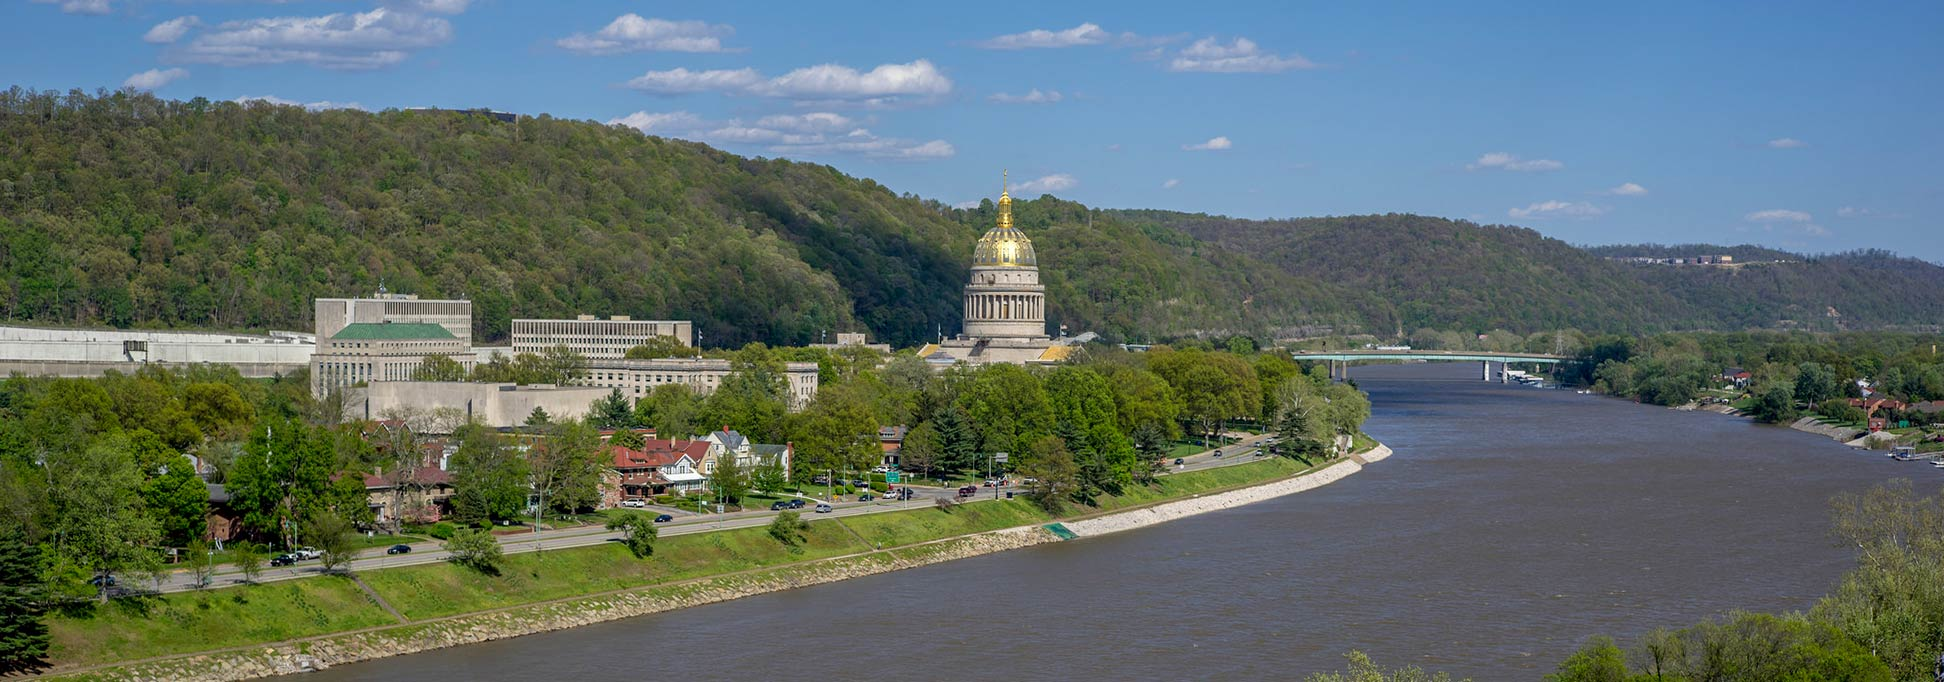 Charleston, the capital of West Virginia, United States ... on wv casinos map, wv college map, virginia state university map, wv airport map, wv parks map,